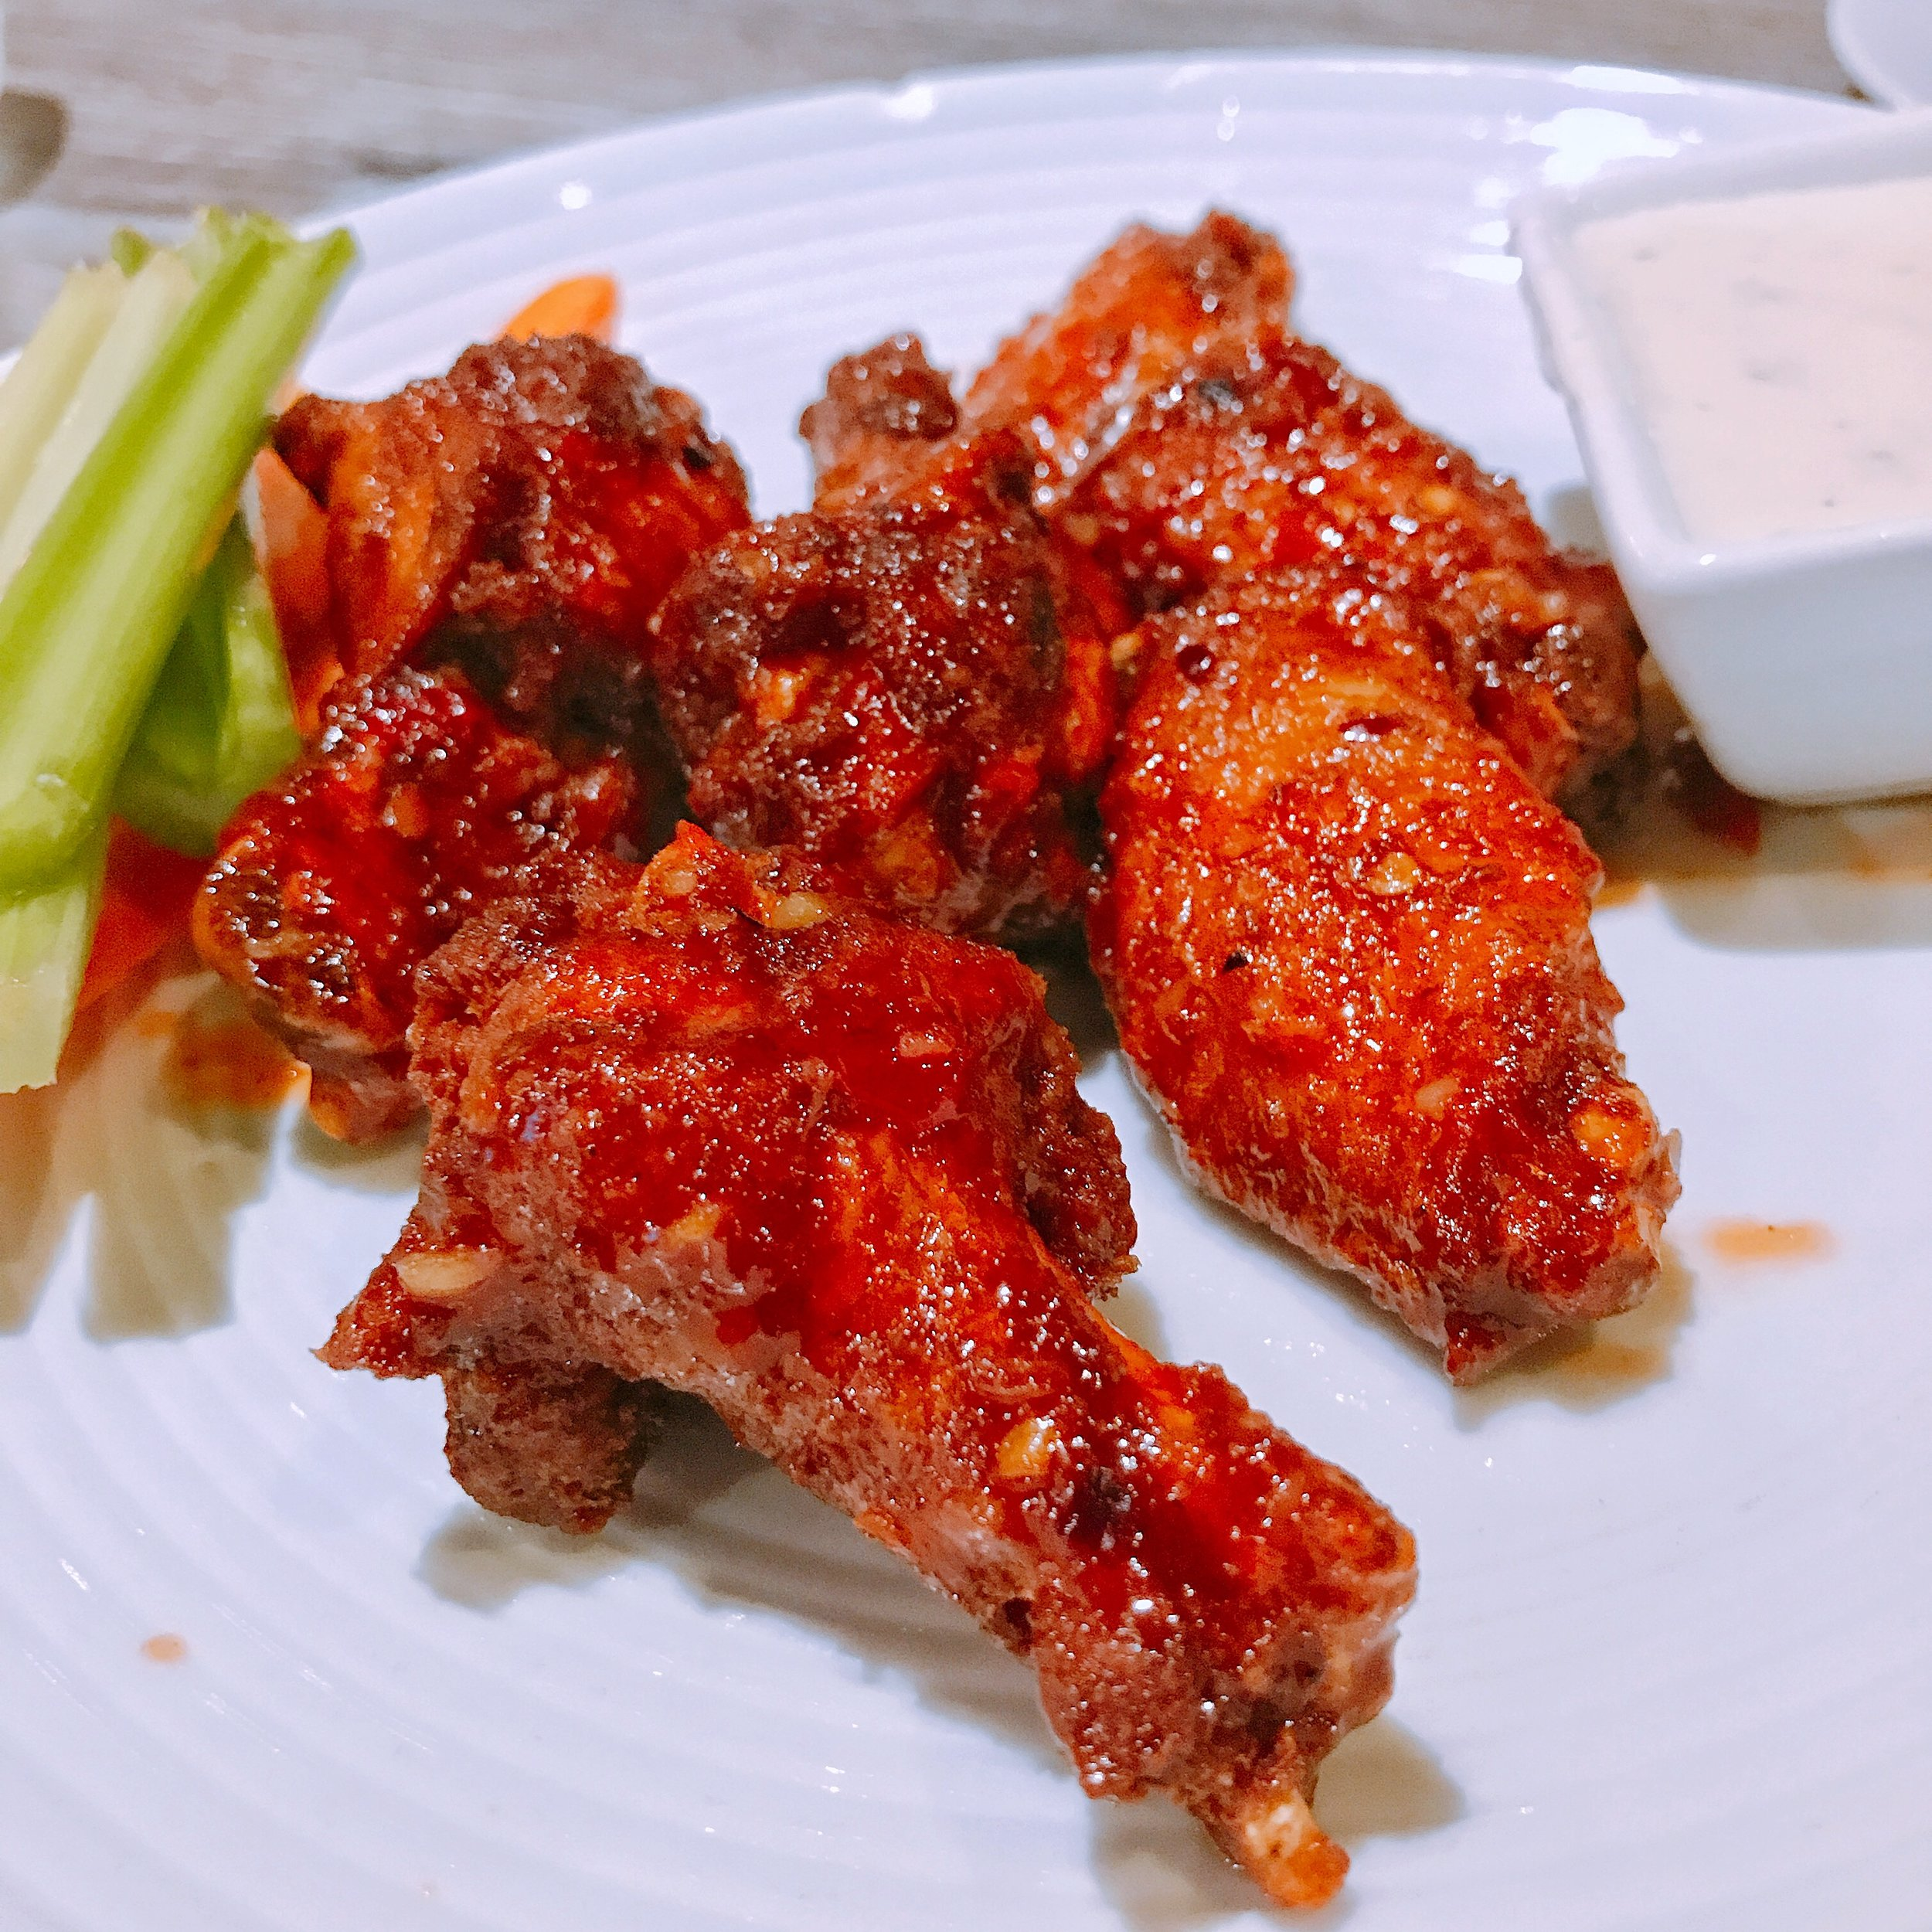 Thai Chicken Wings - As a self proclaimed chicken wing tastemaster, I had to get an order of the wings. These crispy chicken wings coated with housemade Thai wings sauce were on point. The sauce coating the wings was super flavorful, and I must say these are some of the best wings in Charlotte. I know it seems odd to go to a Thai restaurant for wings, but trust me….get an order and thank me later.